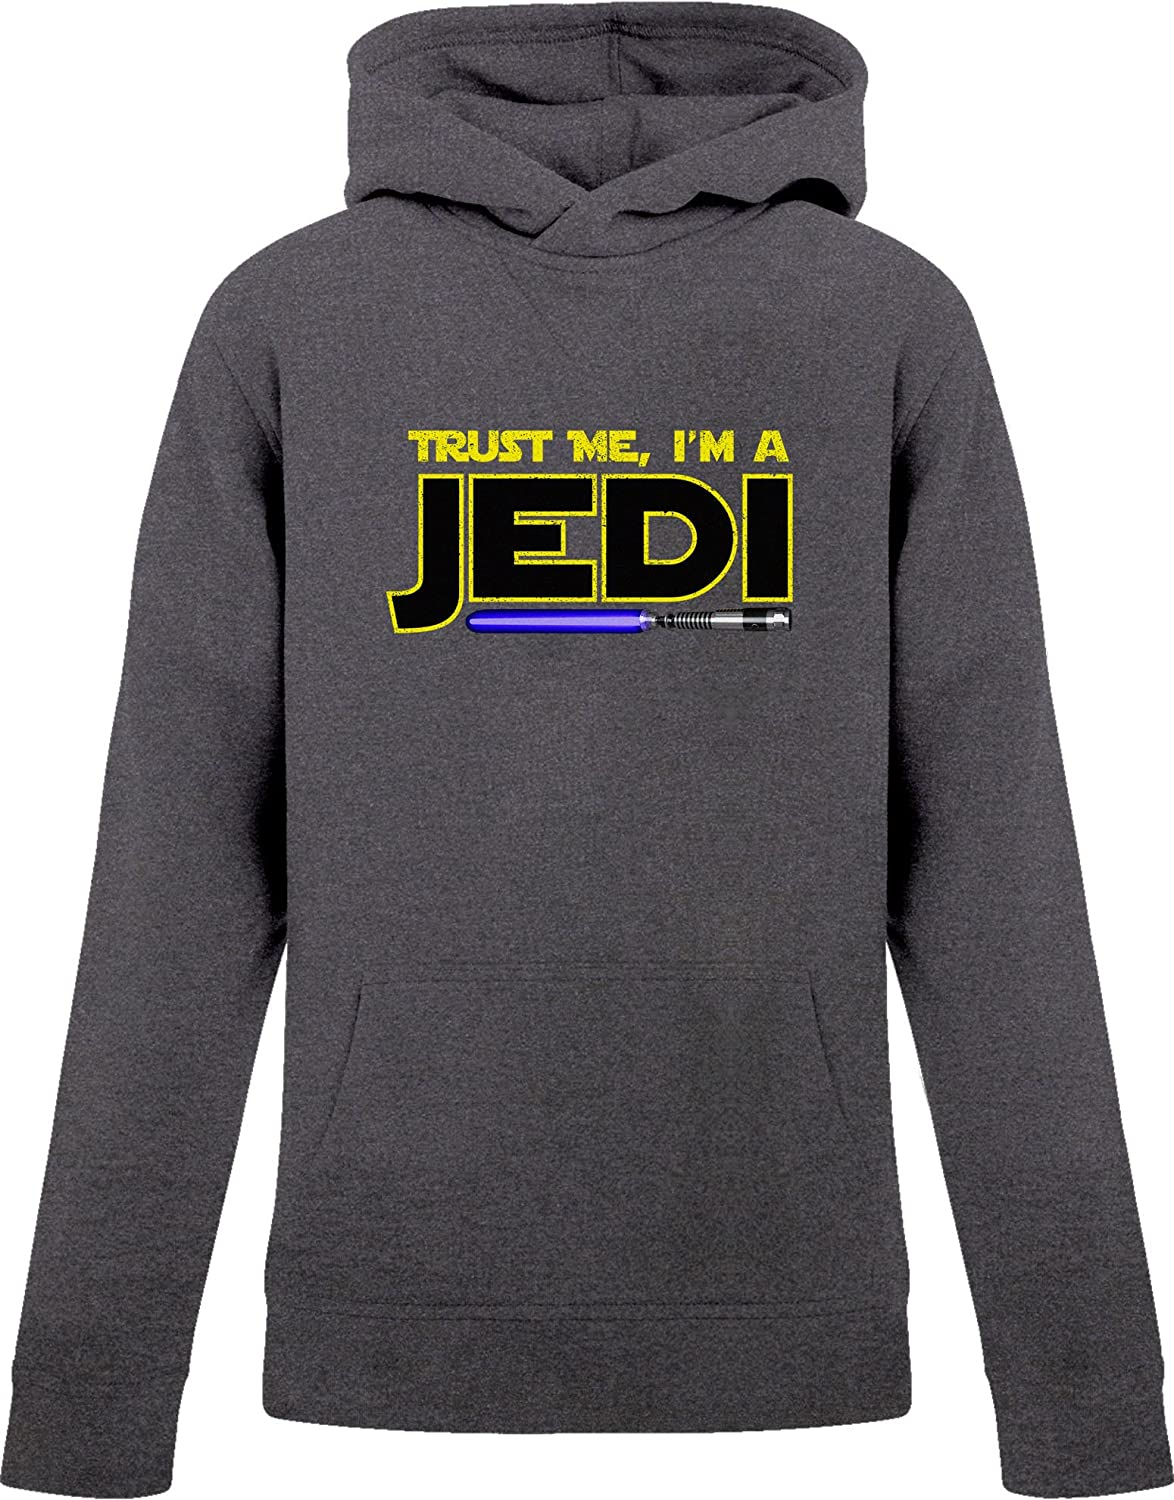 BSW Youth Boys Trust Me I'm A Jedi Star Wars Saber Theme Hoodie 1096-1HPY